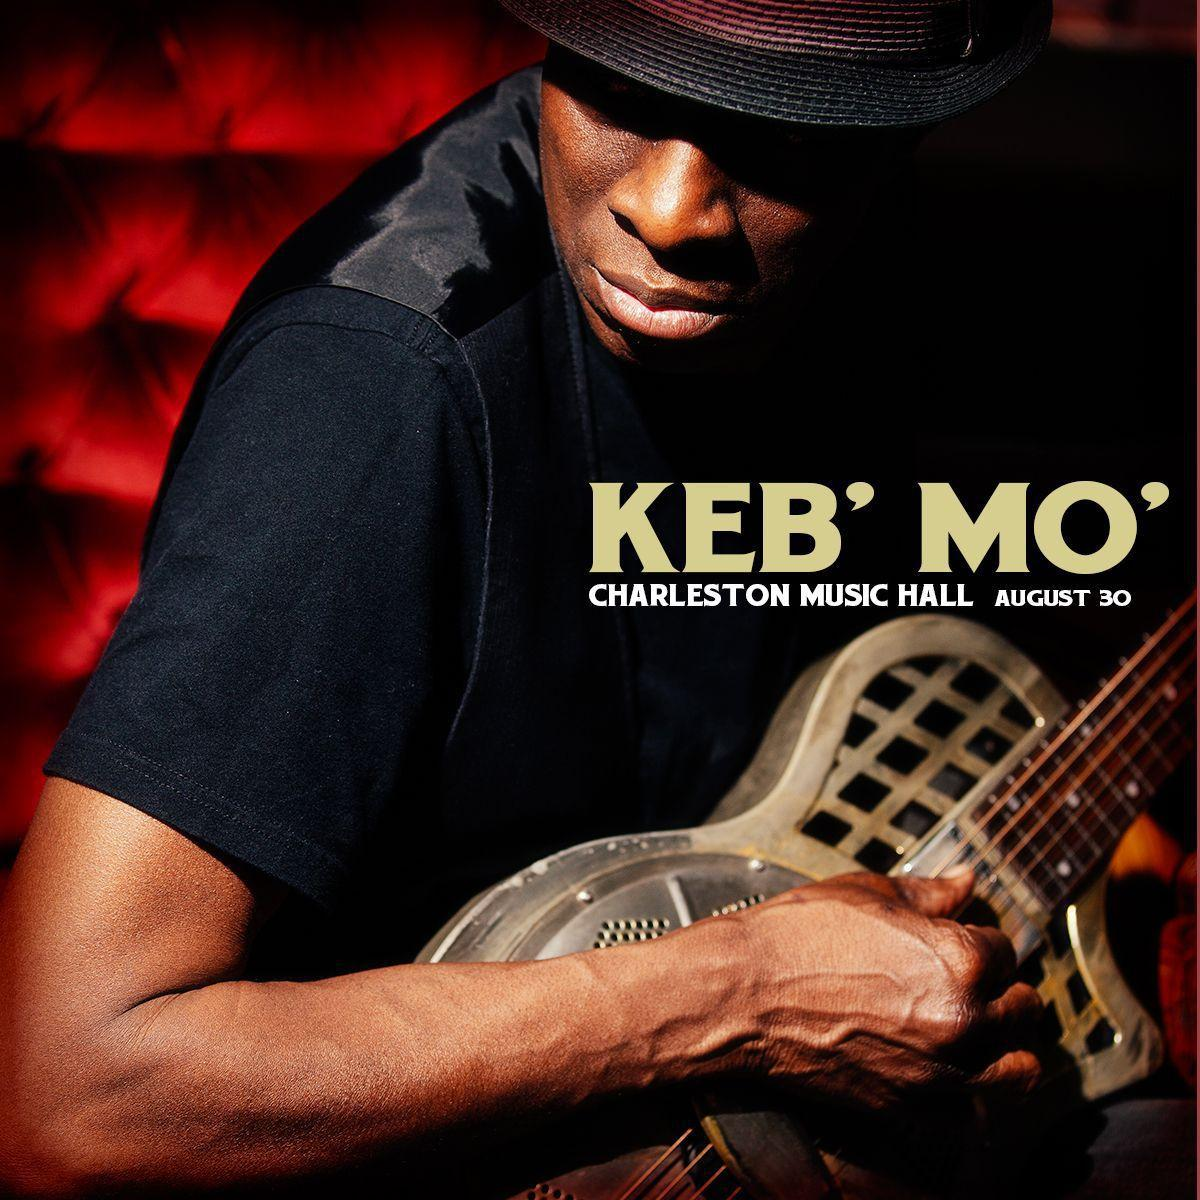 Keb Mo to play Charleston Music Hall in August